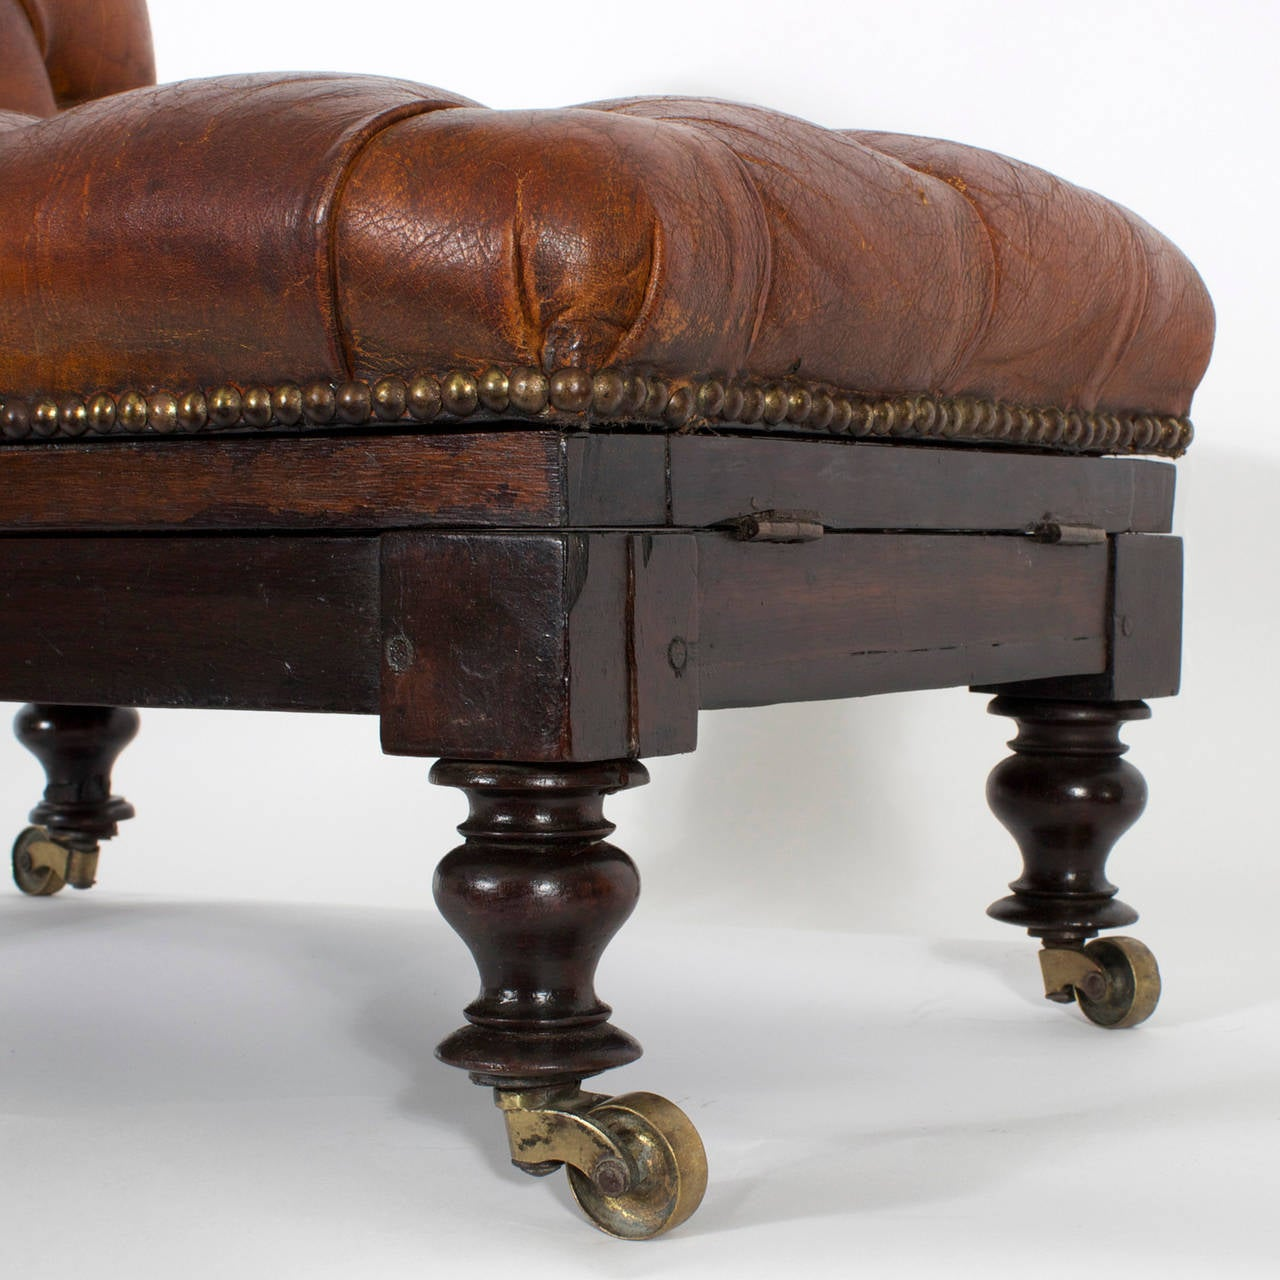 Mid-19th Century 19th Century Tufted Leather Foot Stool or Bench, with Raising Capabilities For Sale